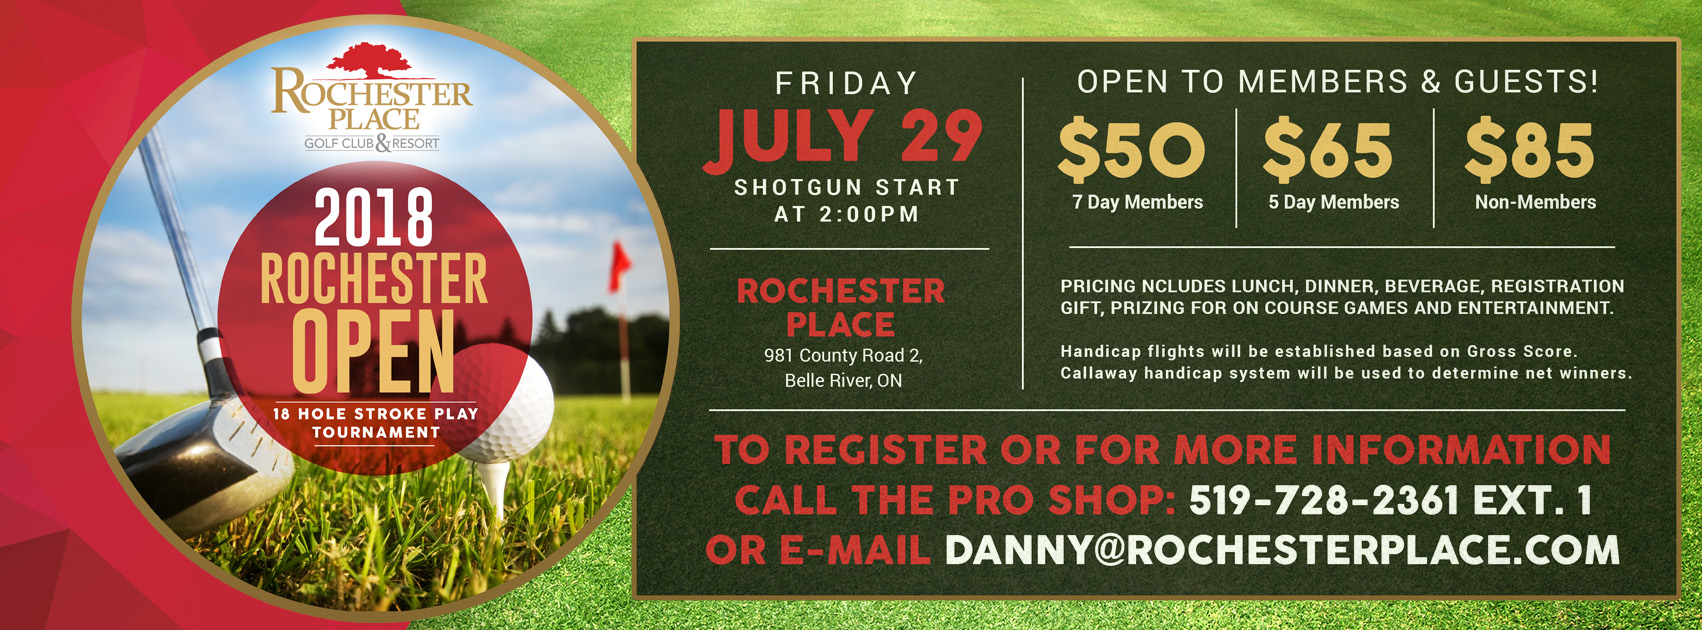 2018 Rochester Open. 18 hole stroke play tournament. Friday July 29, shotgun start at 2:00pm. Open to members & guests! $50 7 day members | $65 5 day members | $85 non-members. Pricing includes lunch, dinner, beverage, registration gift, prizing for on course games and entertainment. Handicap flights will be established based on Gross Score. Callaway handicap system will be used to determine net winners. To register or for more information call the pro shop: 519-728-2361 ext. 1 or email danny@rochesterplace.com